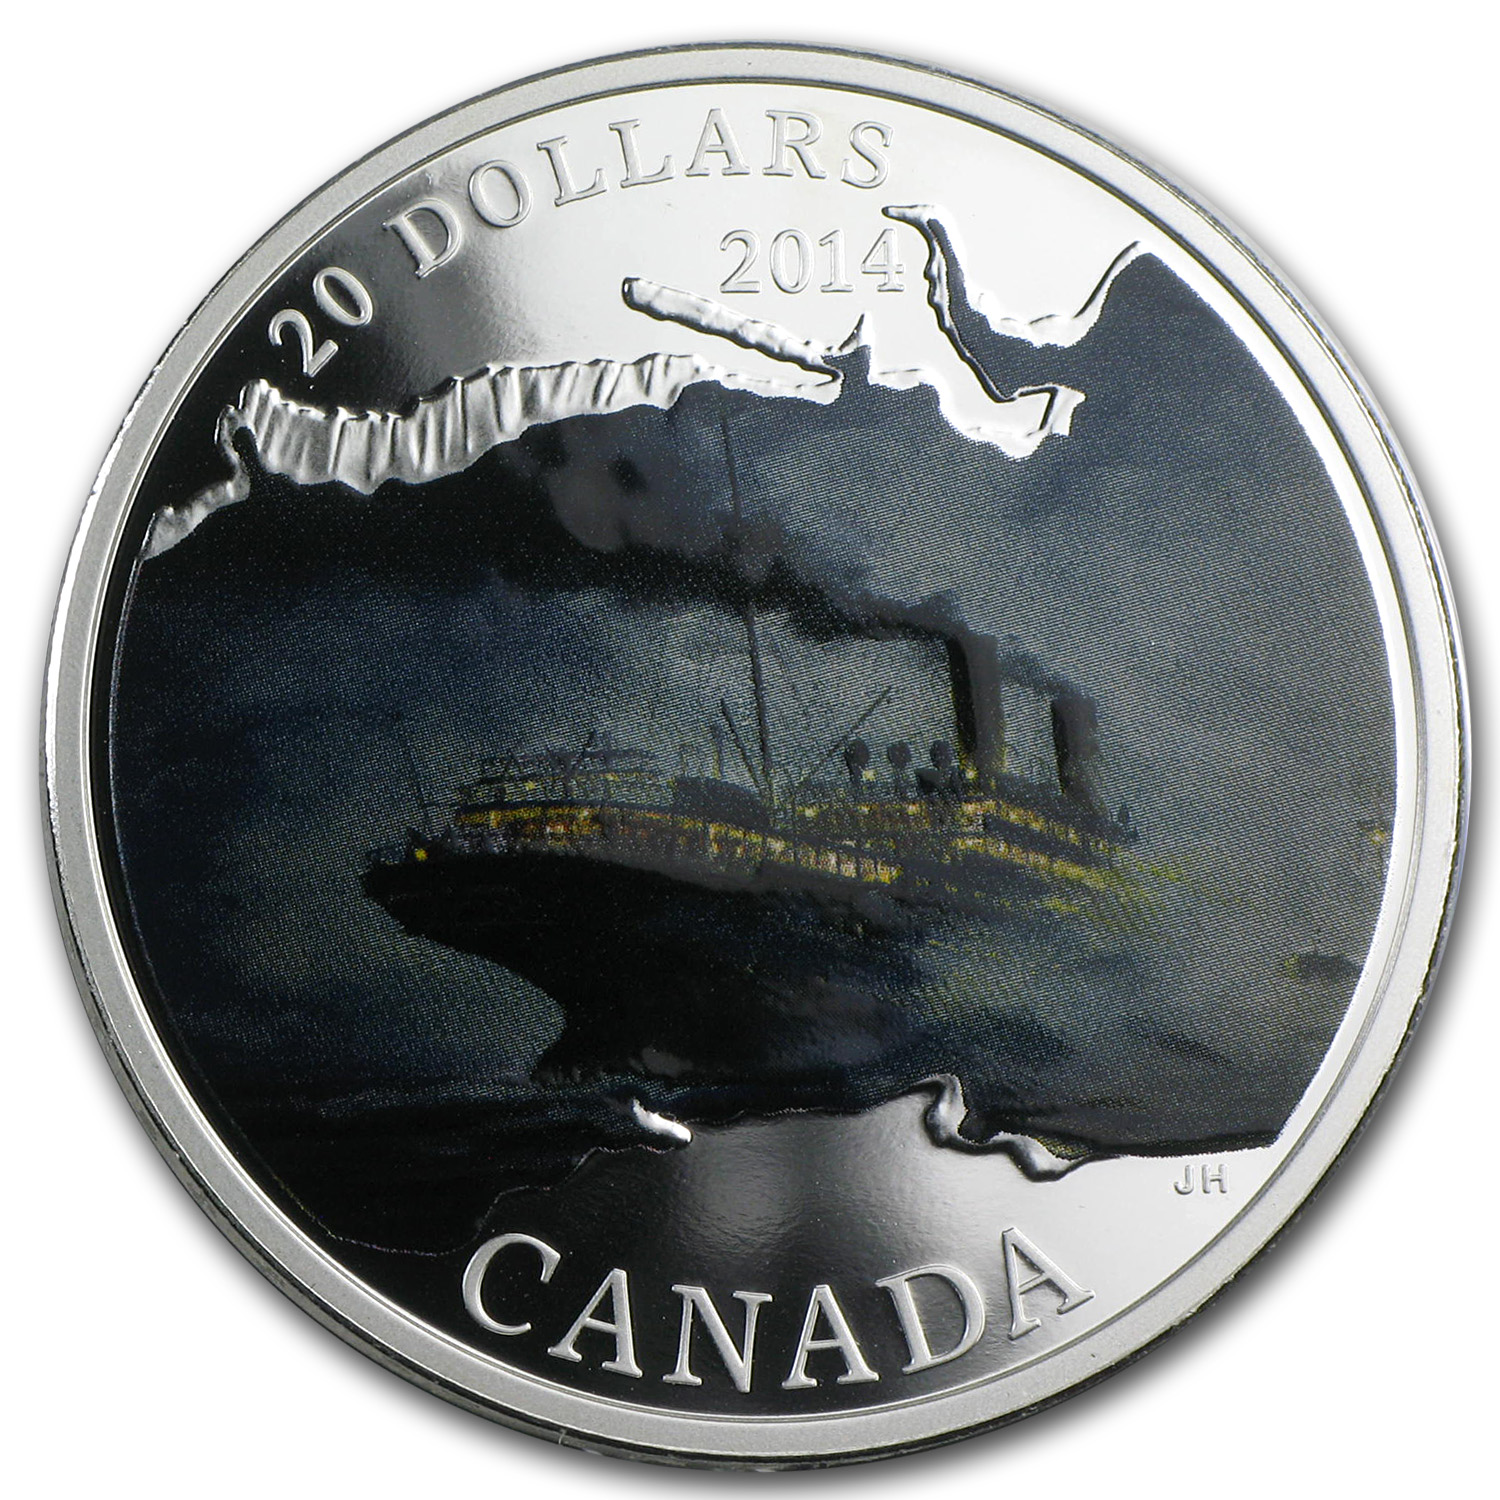 2014 Canada 1 oz Silver Lost Ships R.M.S Empress of Ireland